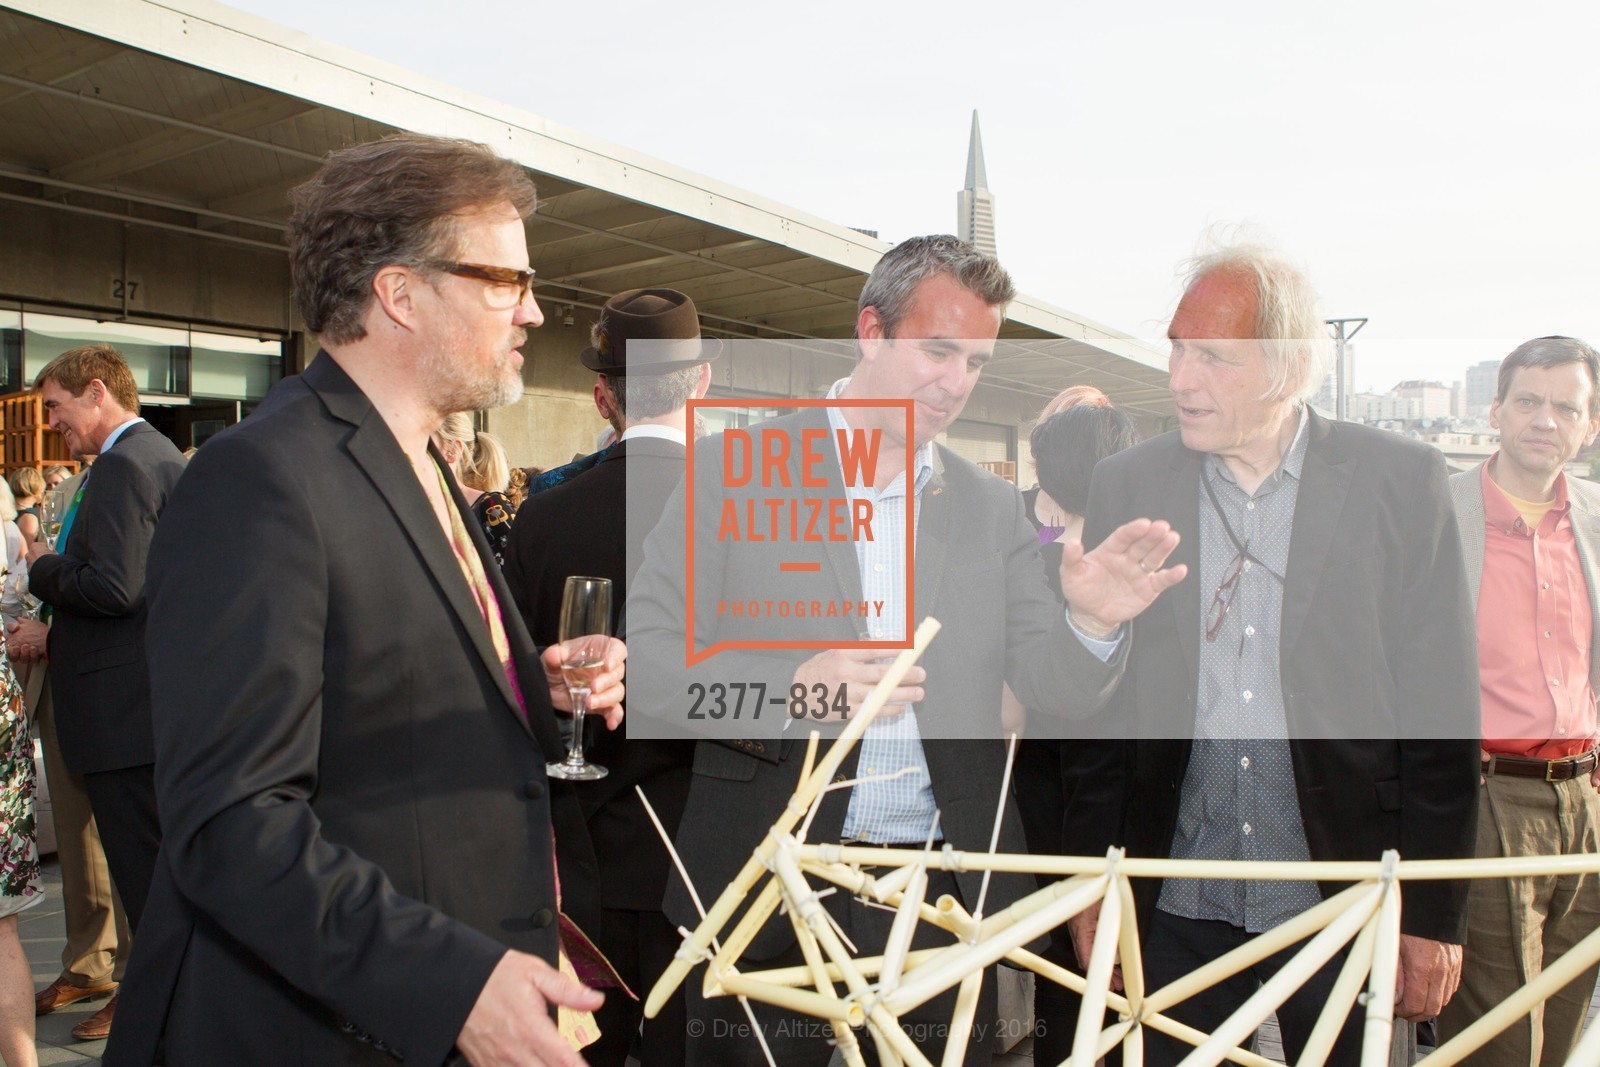 Trevor Smith, David Deming, Theo Jansen, Exploratorium Spring Gala, Exploratorium, 140515, May 15th, 2014,Drew Altizer, Drew Altizer Photography, full-service agency, private events, San Francisco photographer, photographer california